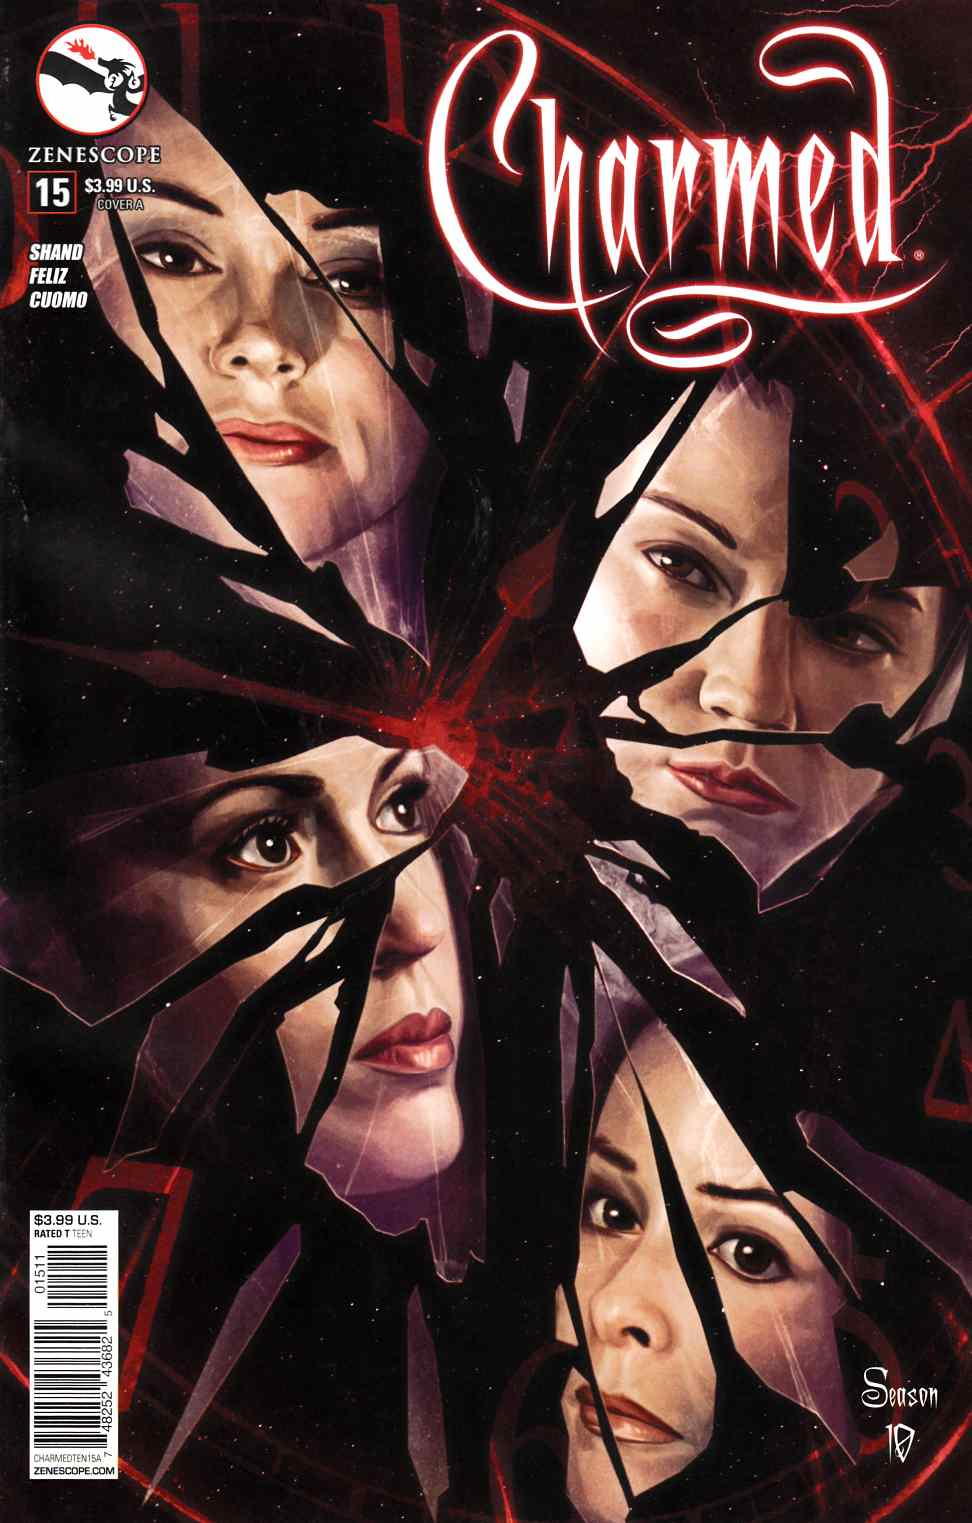 Charmed Season 10 #15 [Zenescope Comic] THUMBNAIL